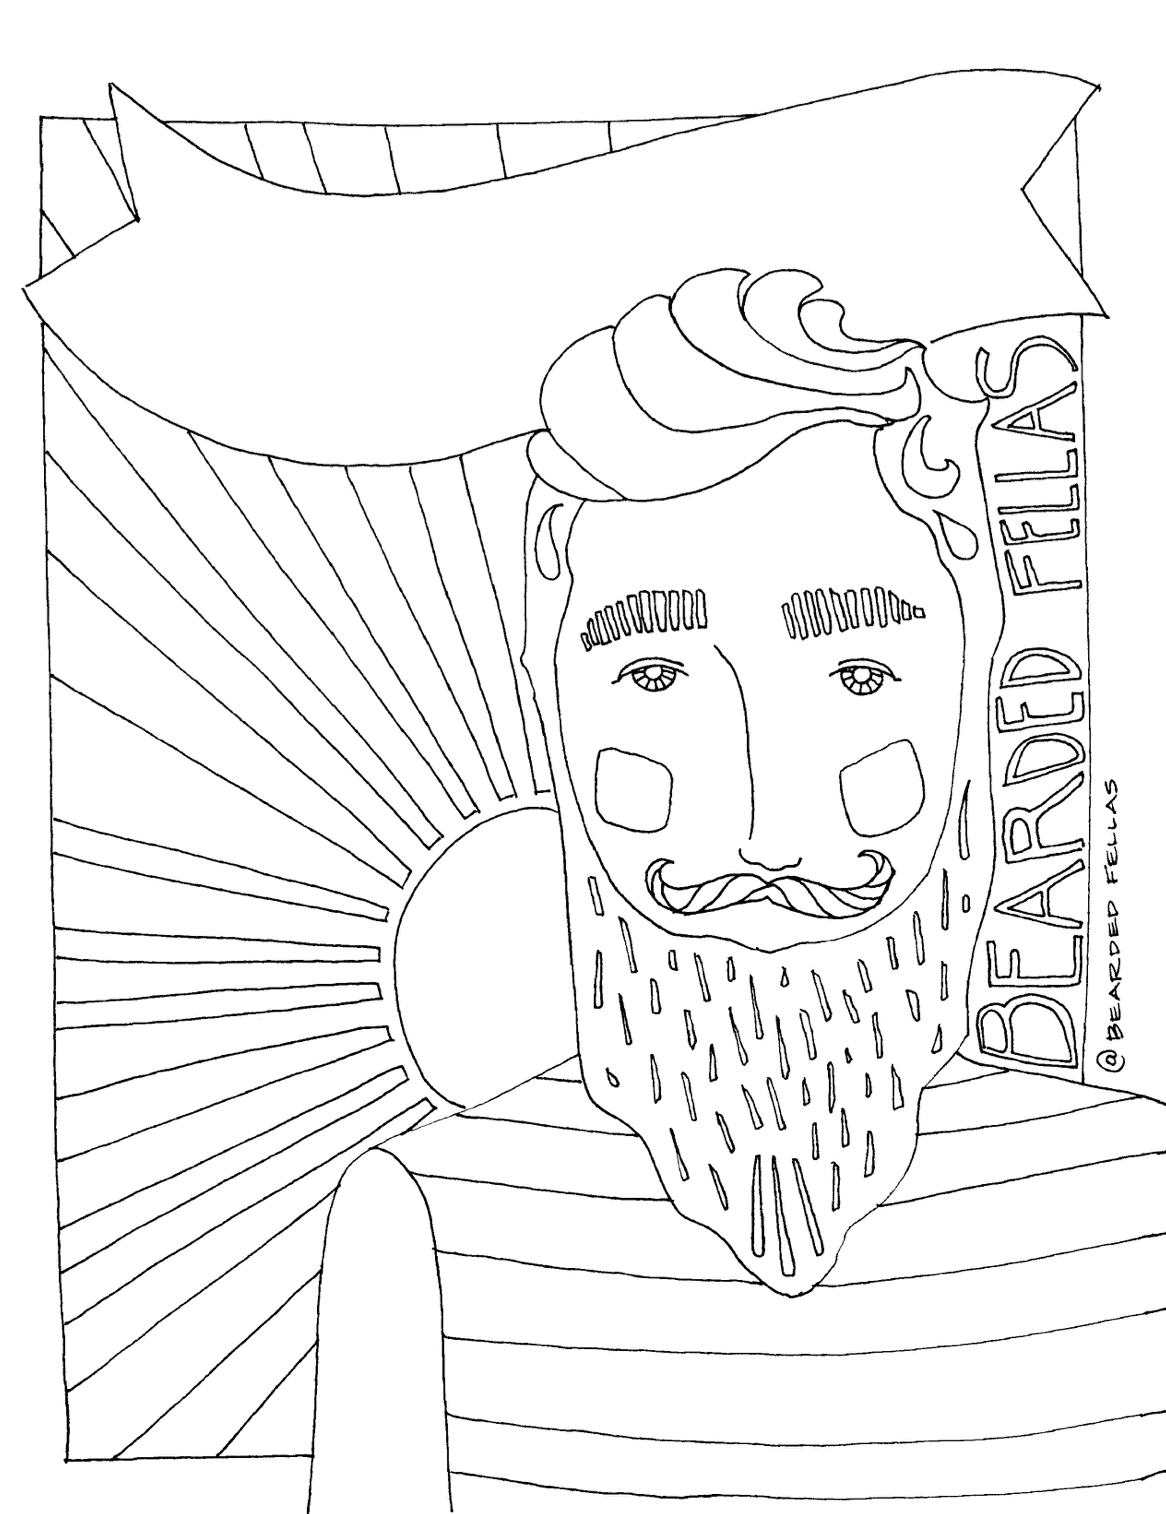 Bearded Fella with Sun Burst Coloring Page